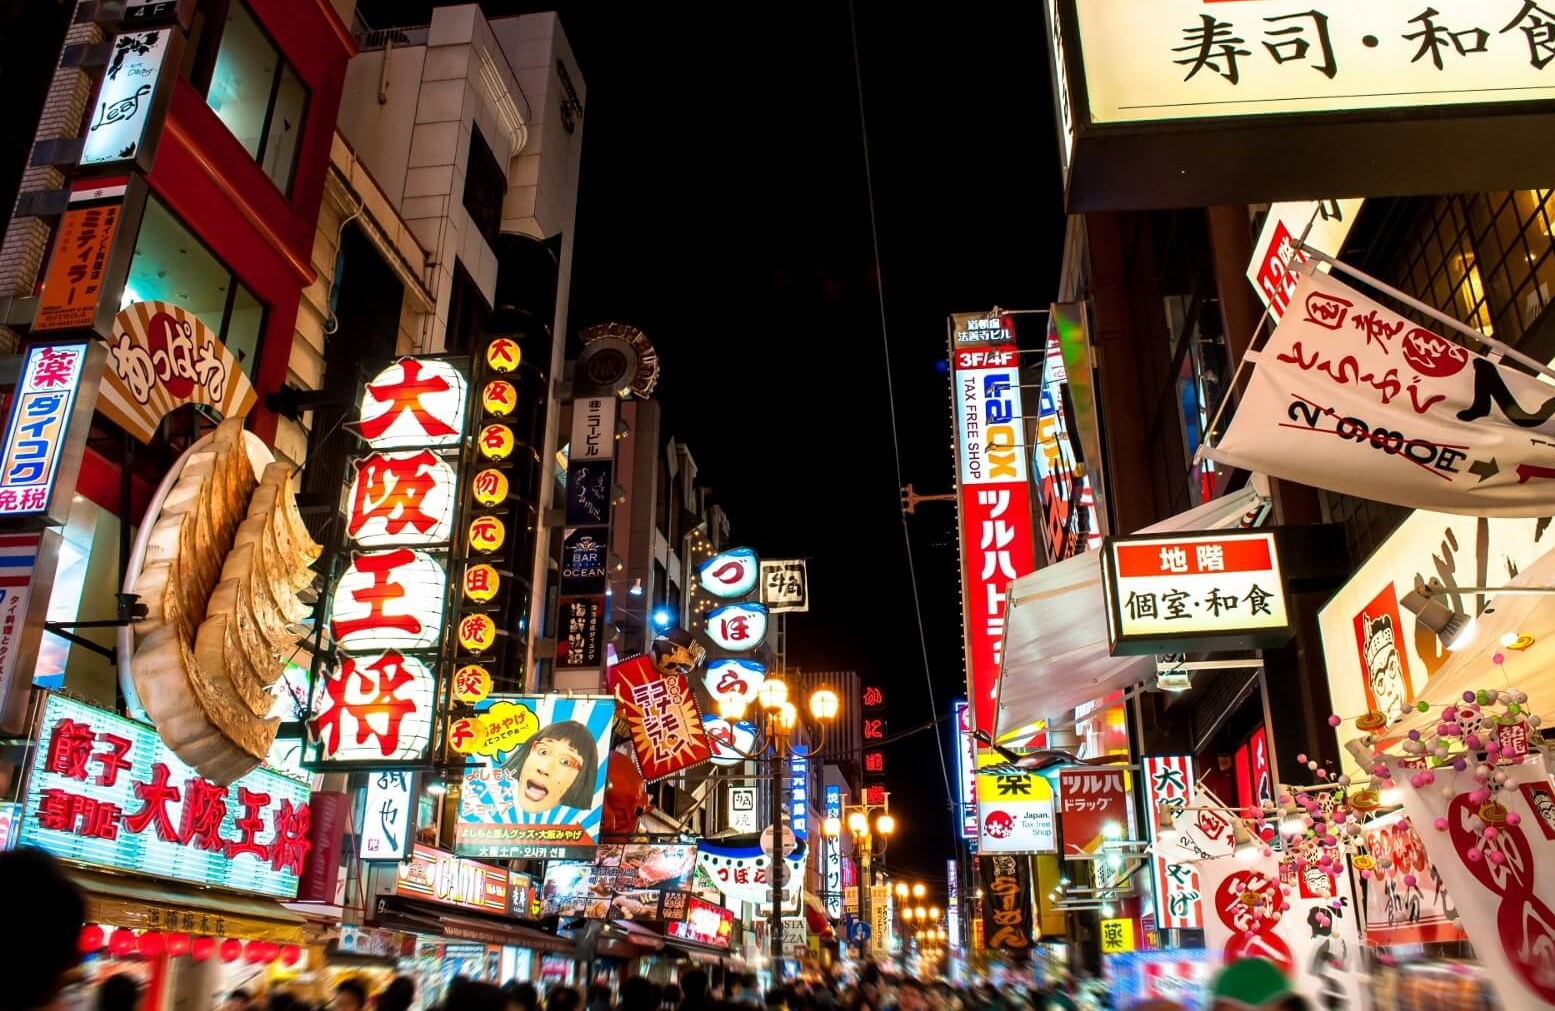 Bustling street of Dotonbori at night